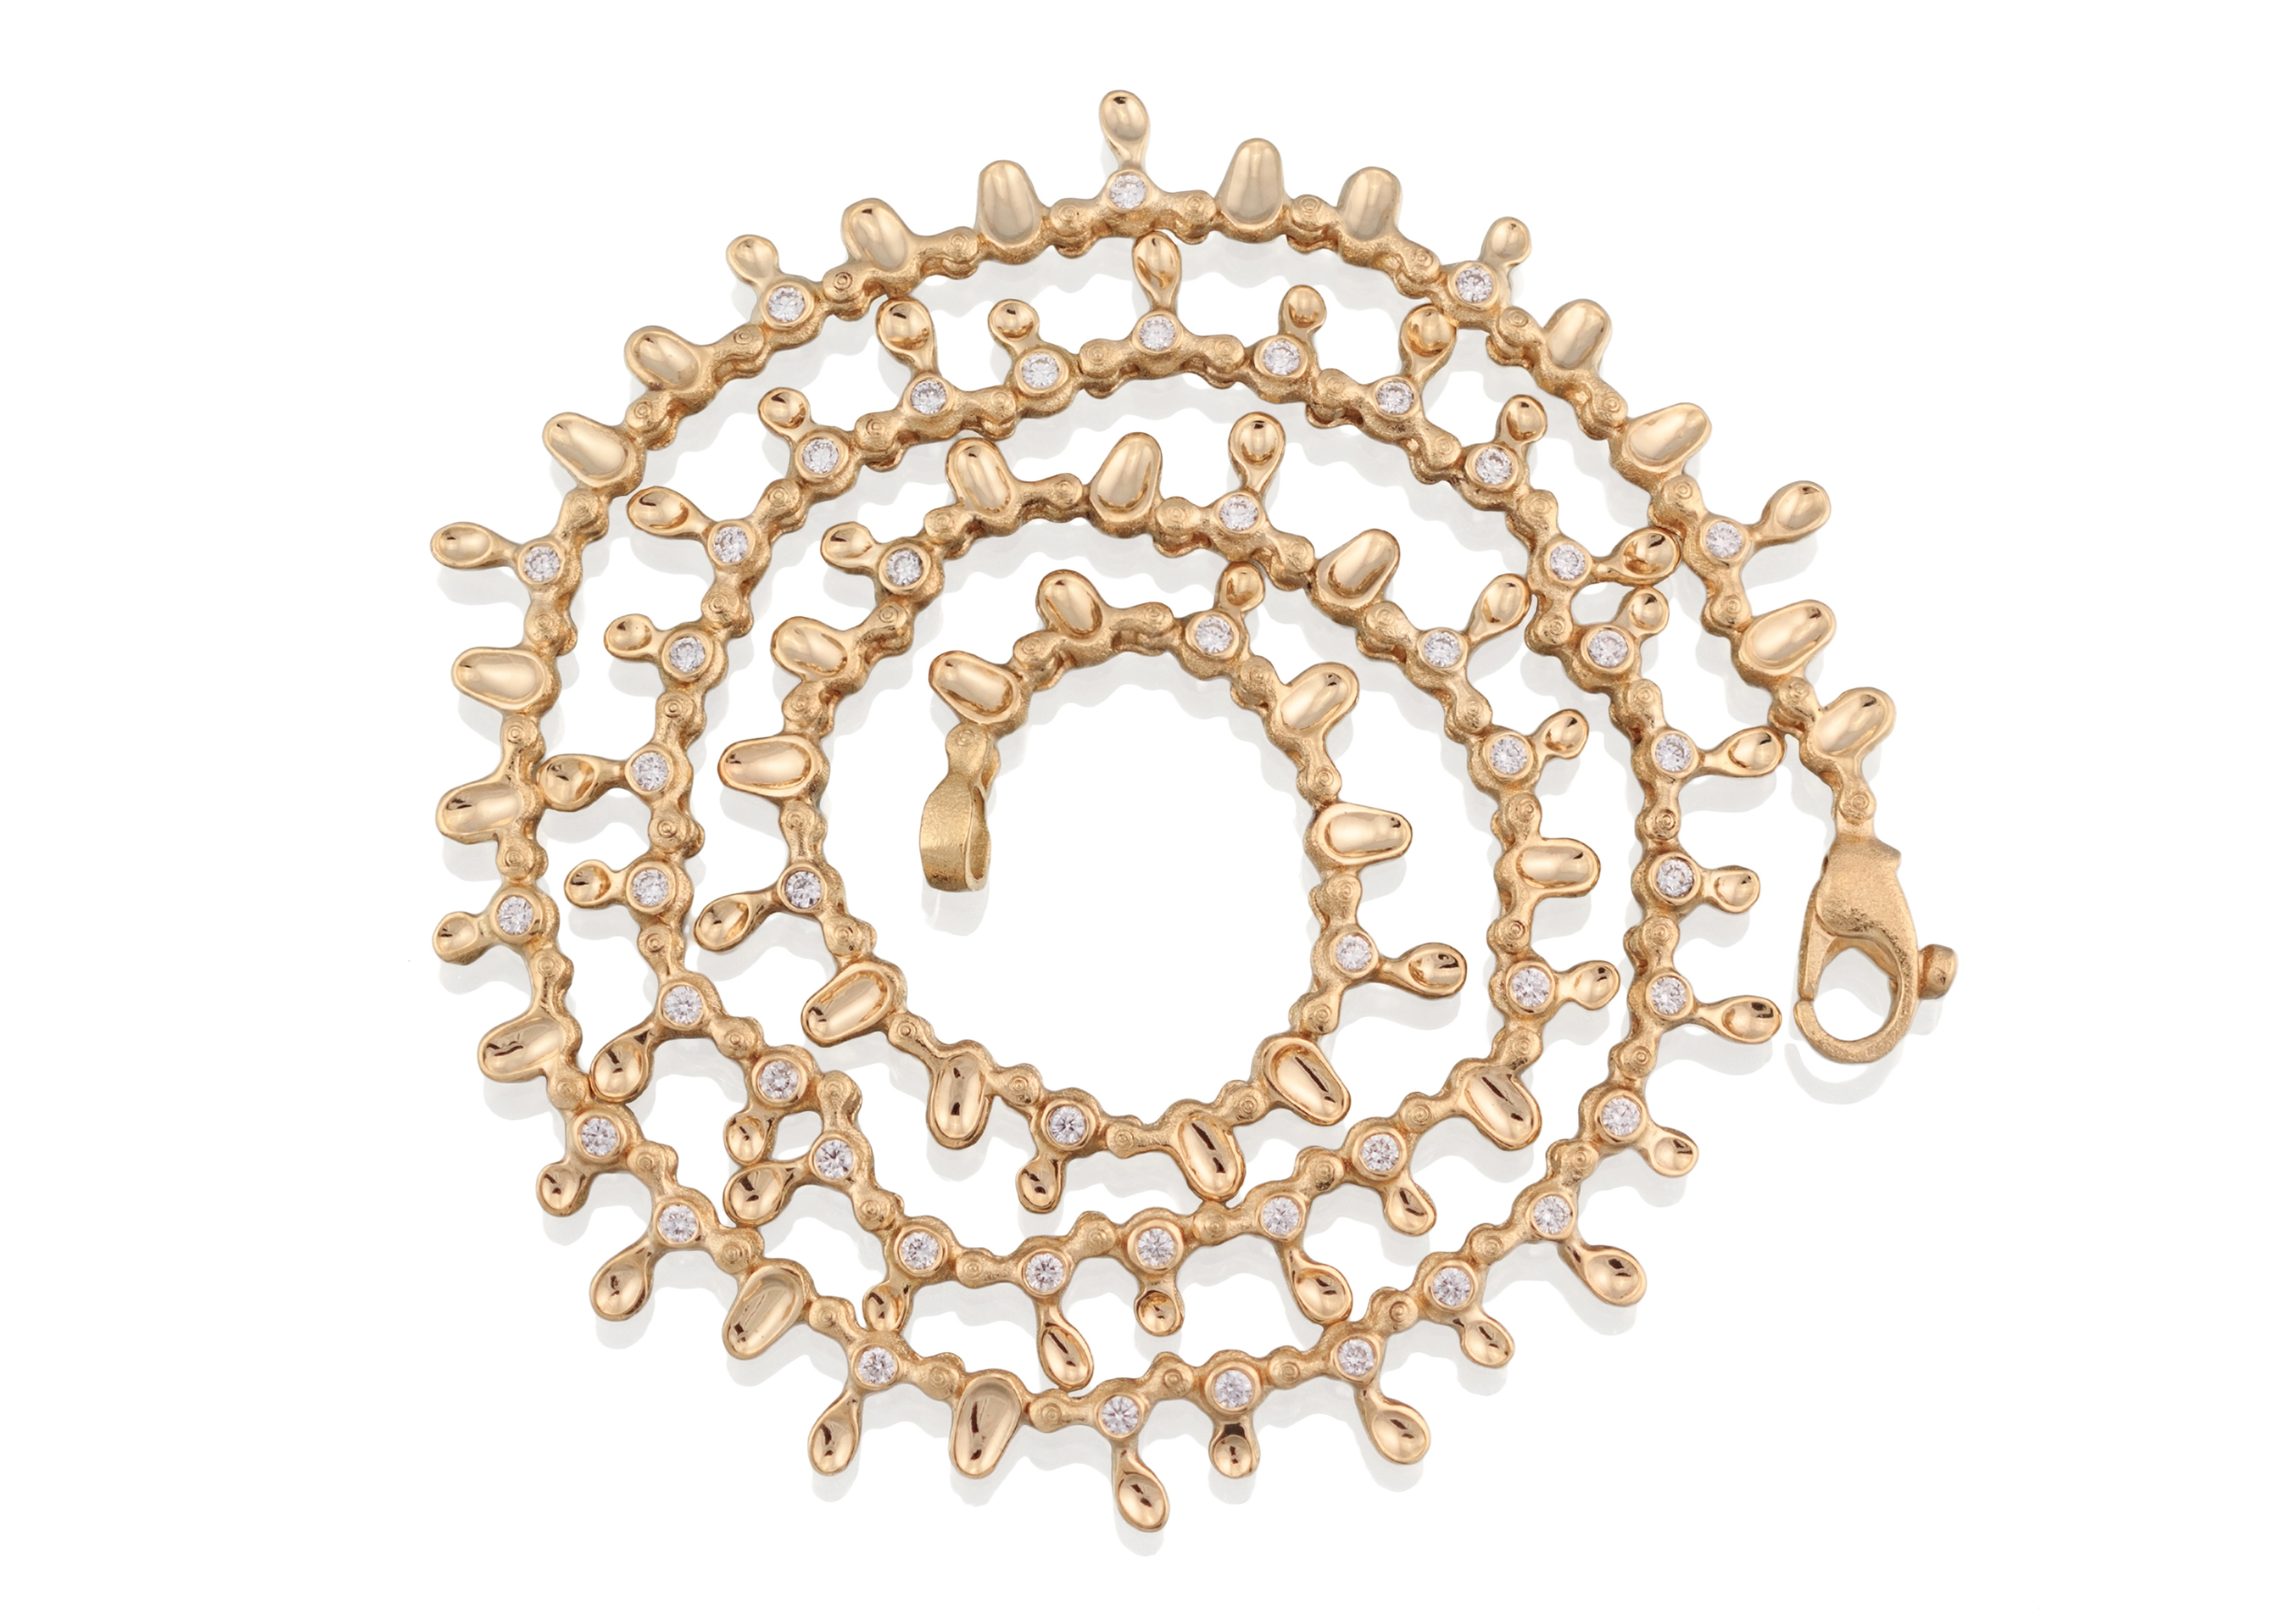 Dew Drops. 18k yellow gold and white diamond necklace, 19in. length.jpg